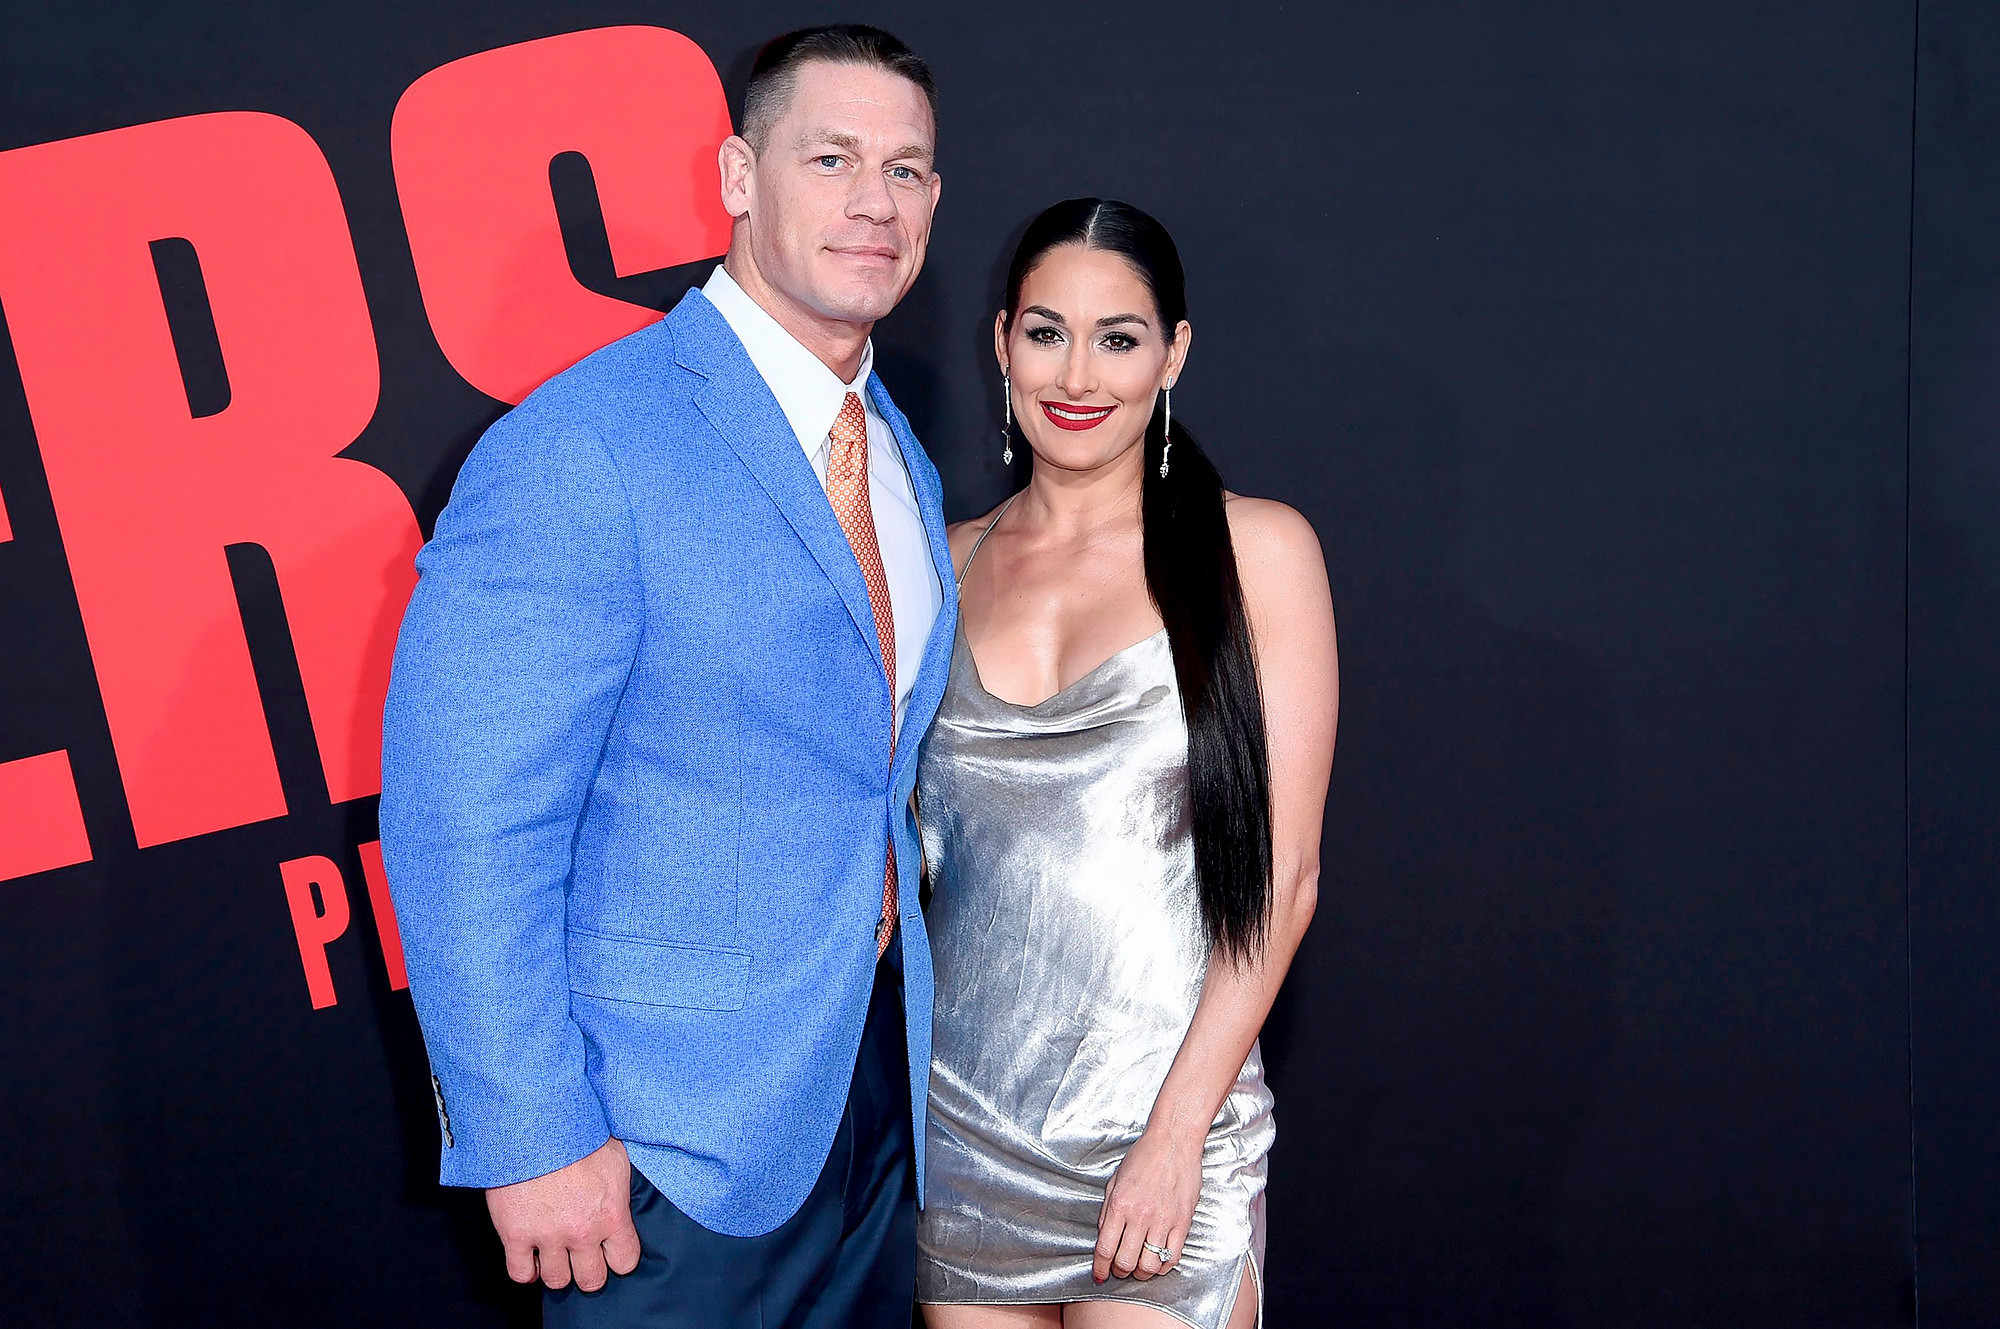 Nikki Bella Has One Regret About Televising Her Breakup With John Cena